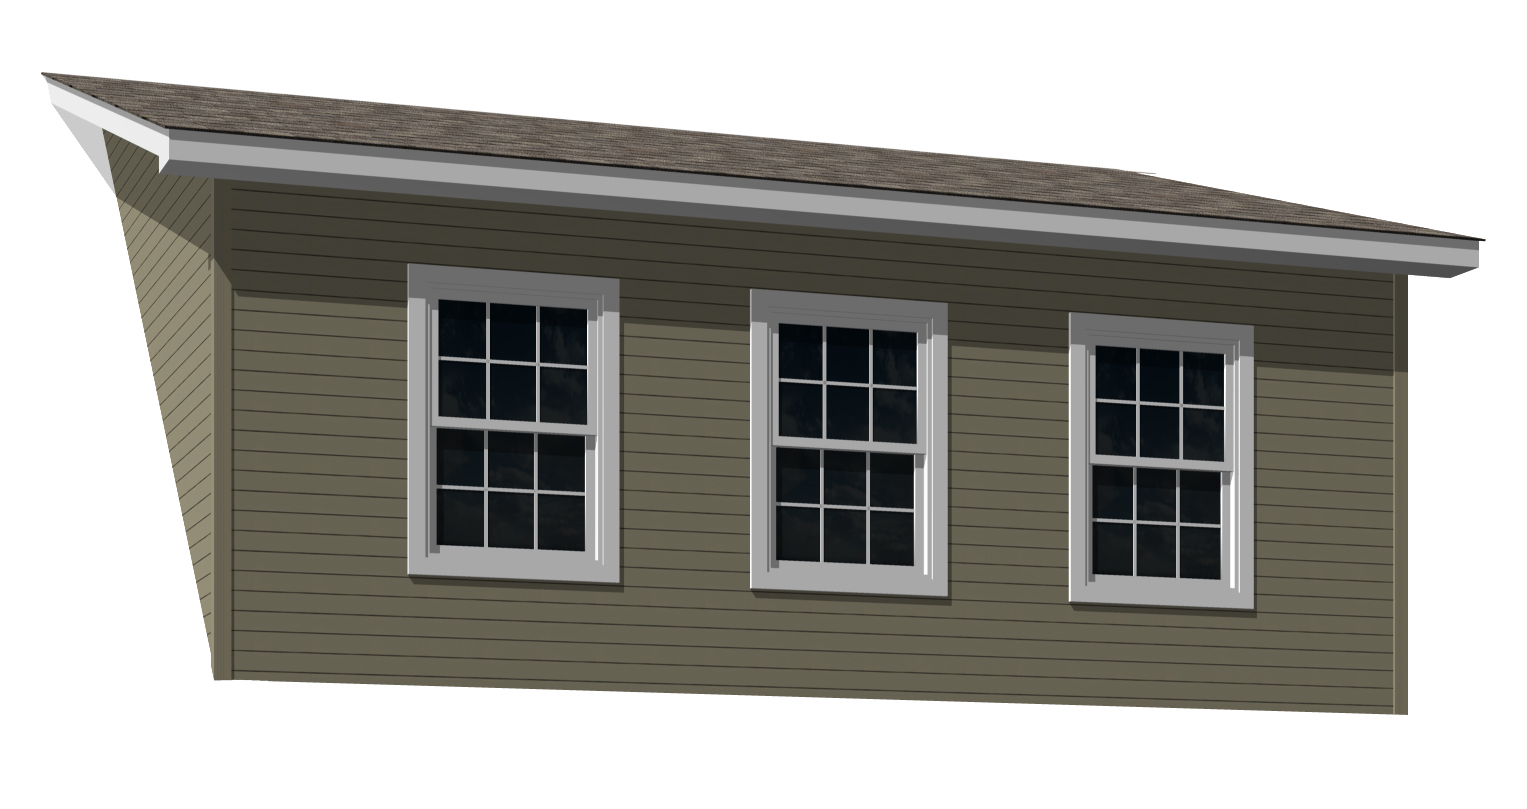 Shed dormer - Any window combination available